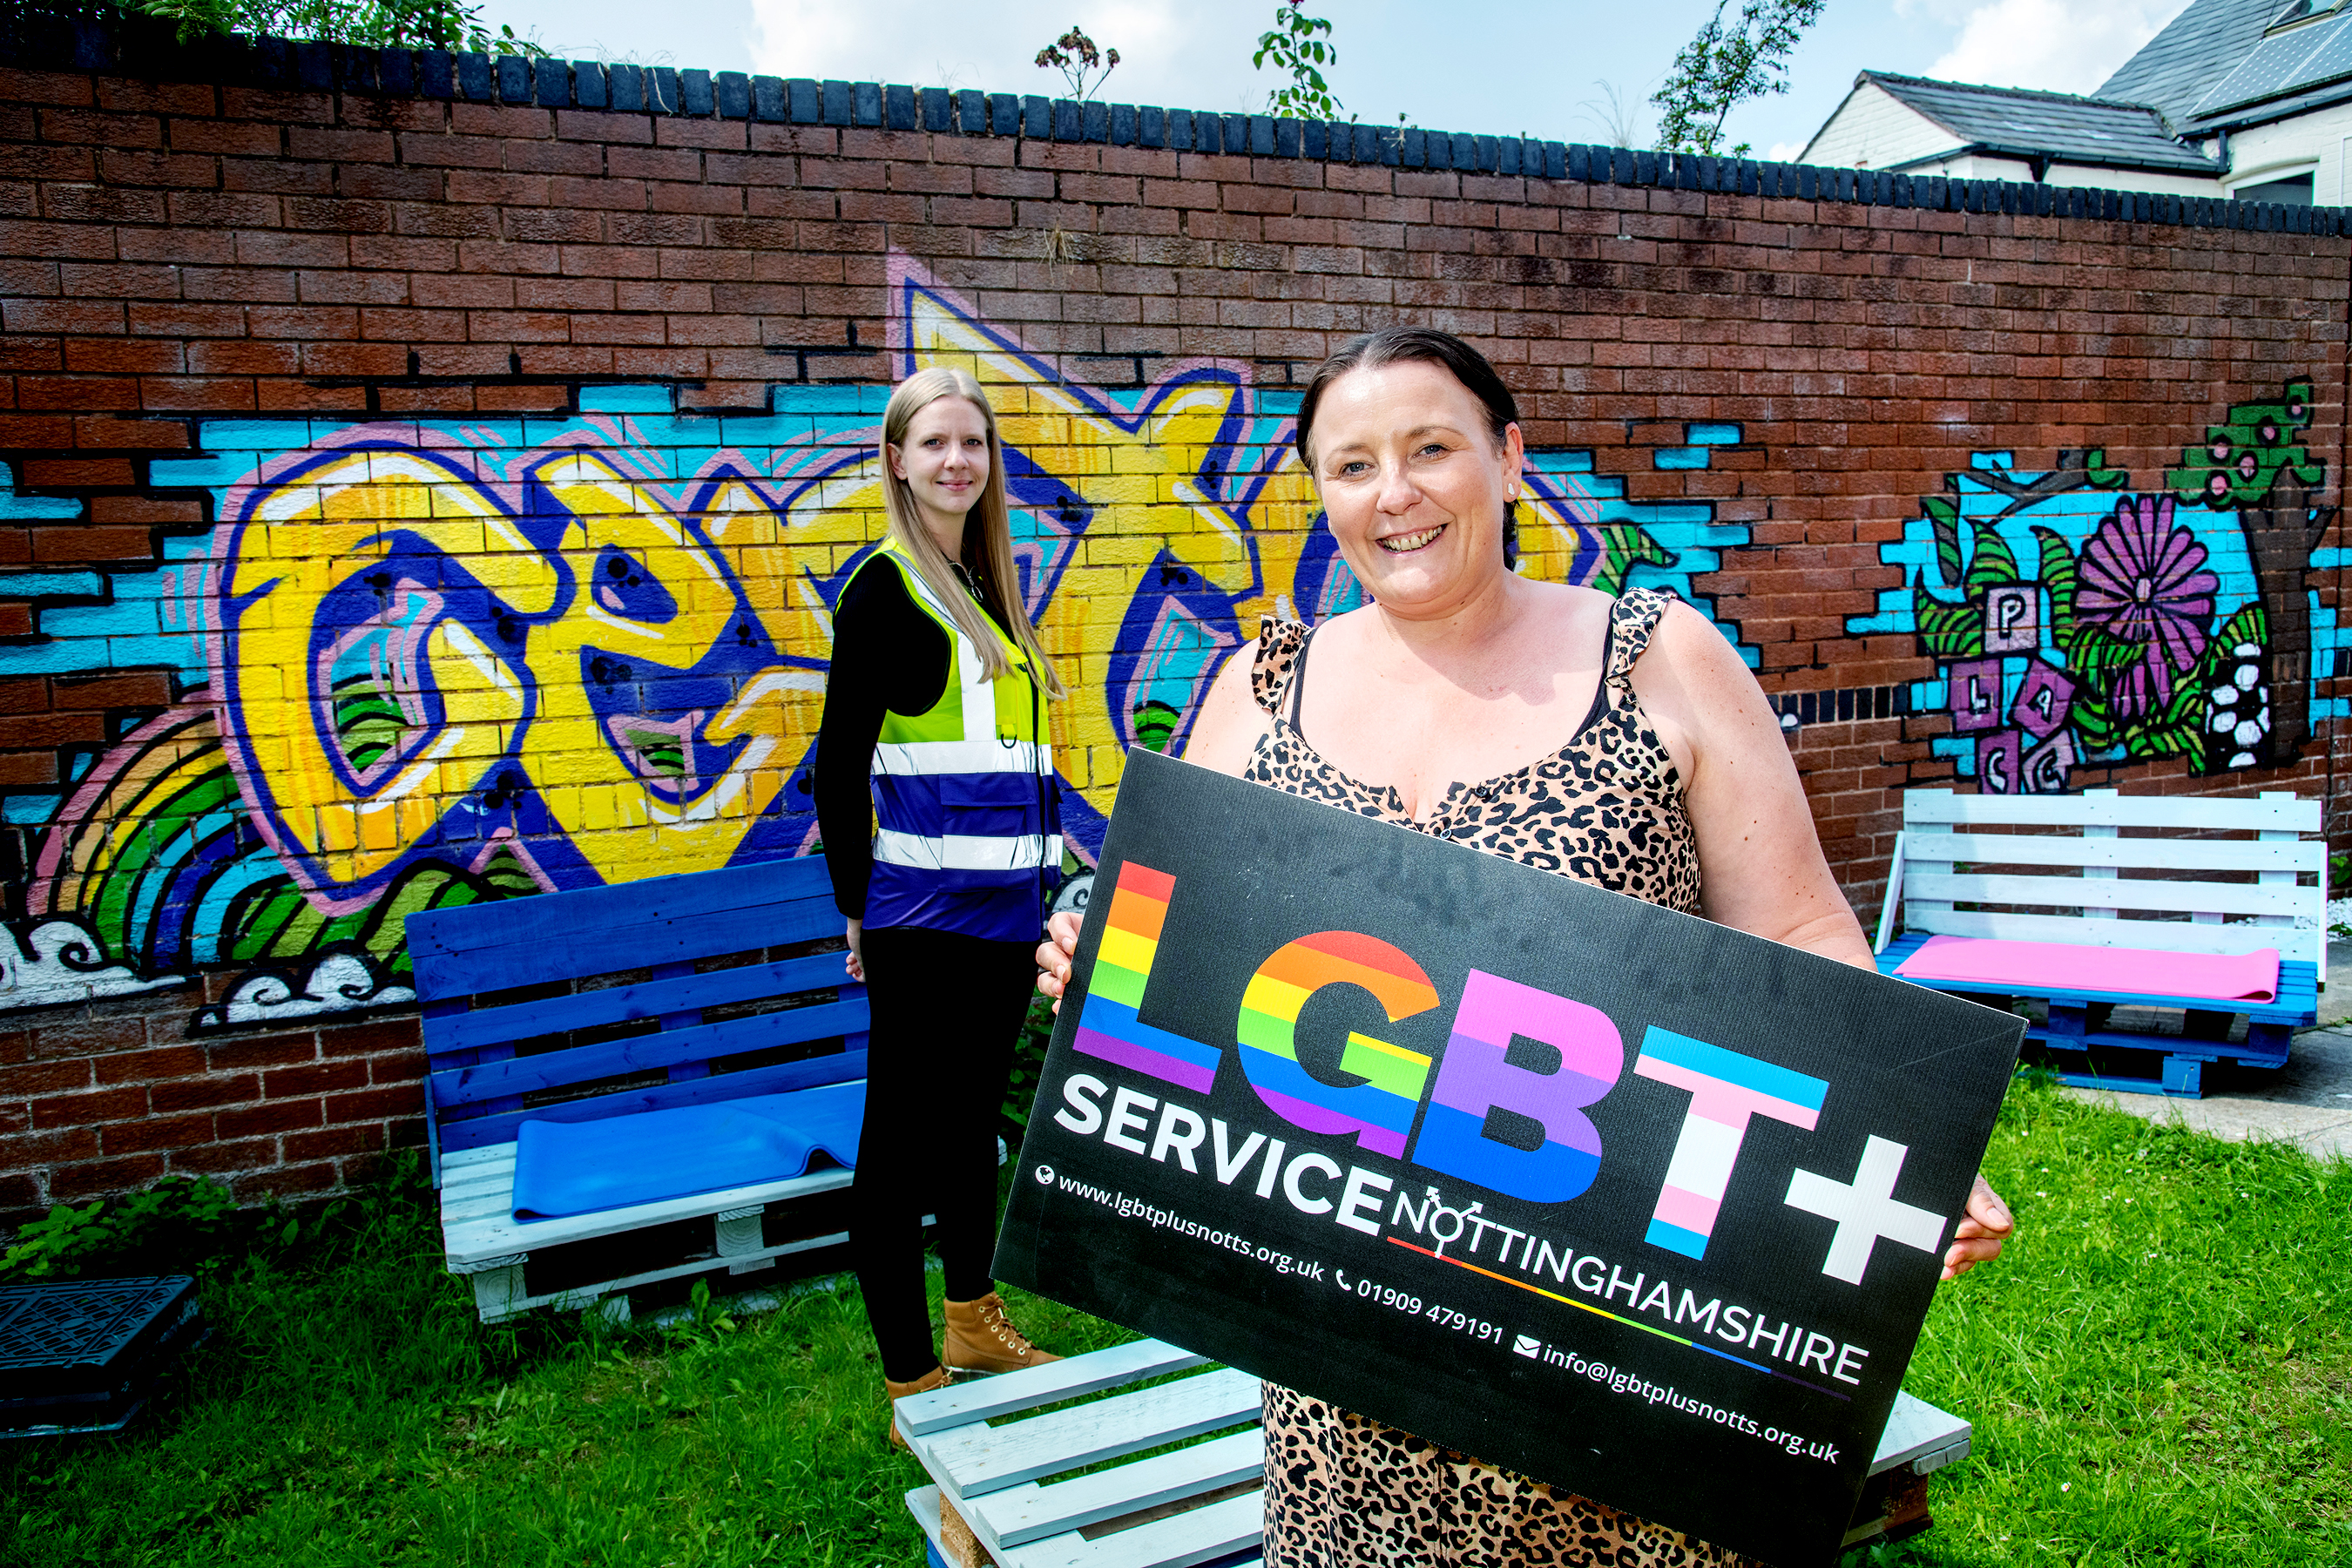 NOTTINGHAMSHIRE LGBT+ CHARITY RECEIVES DONATION FROM AMAZON